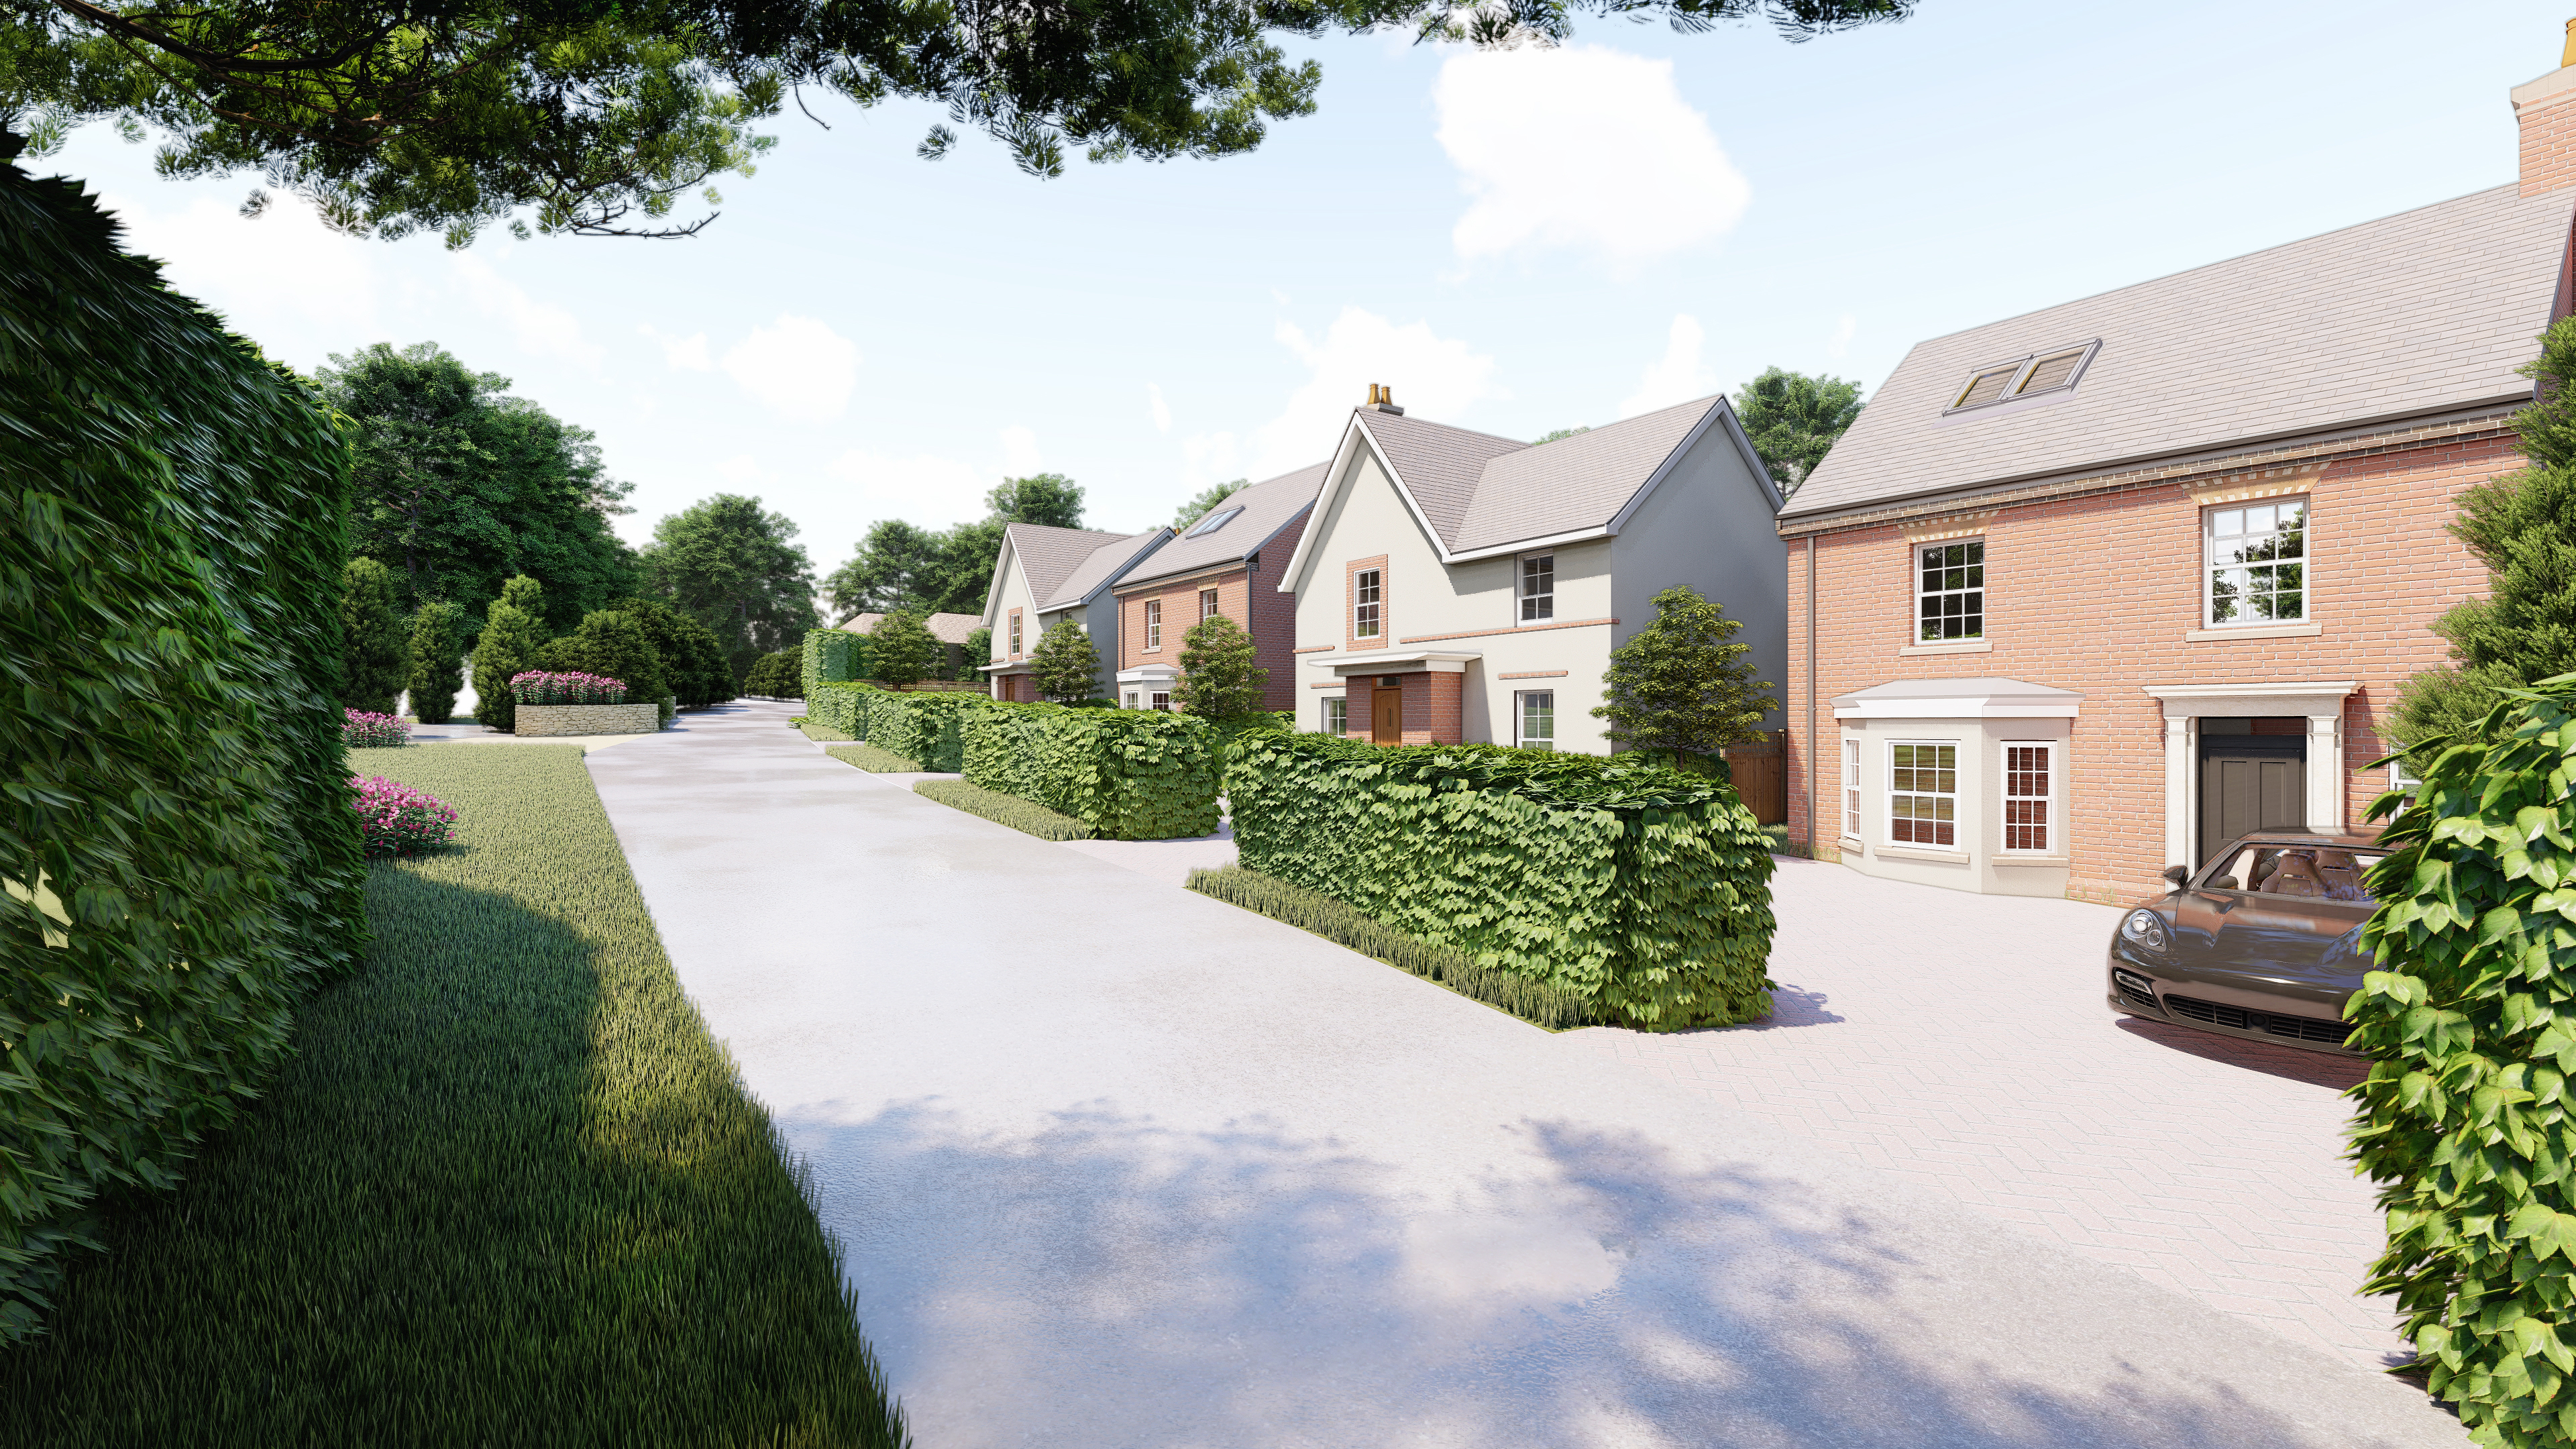 Exterior Image 1 - Land at Shamley Green